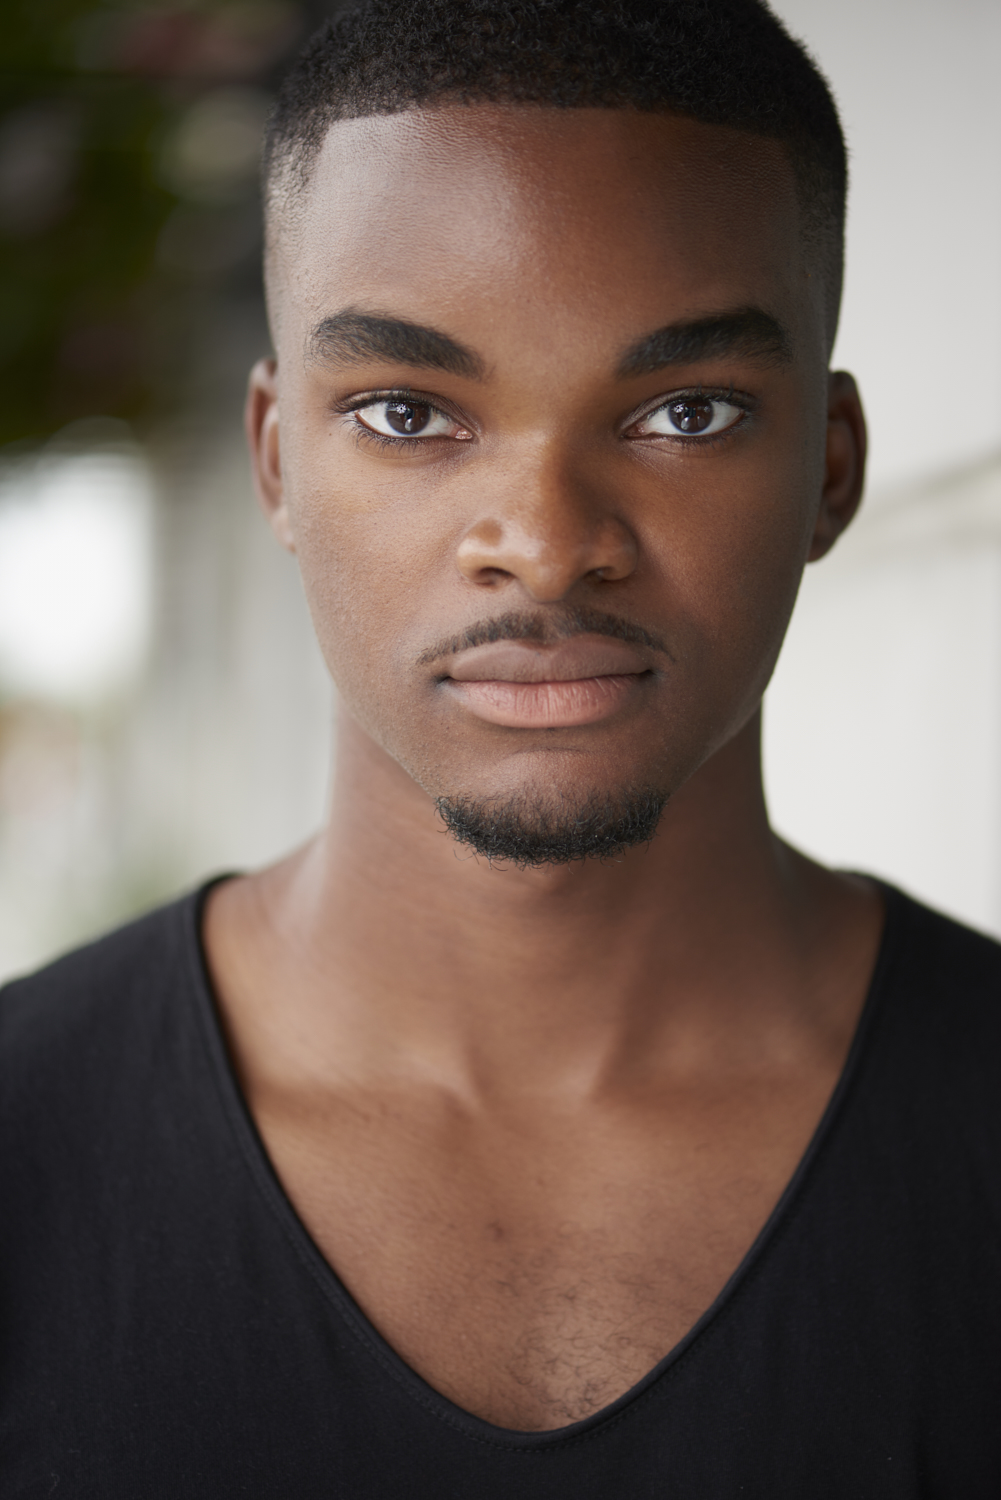 Headshot-session-on-location-with-Michael-3